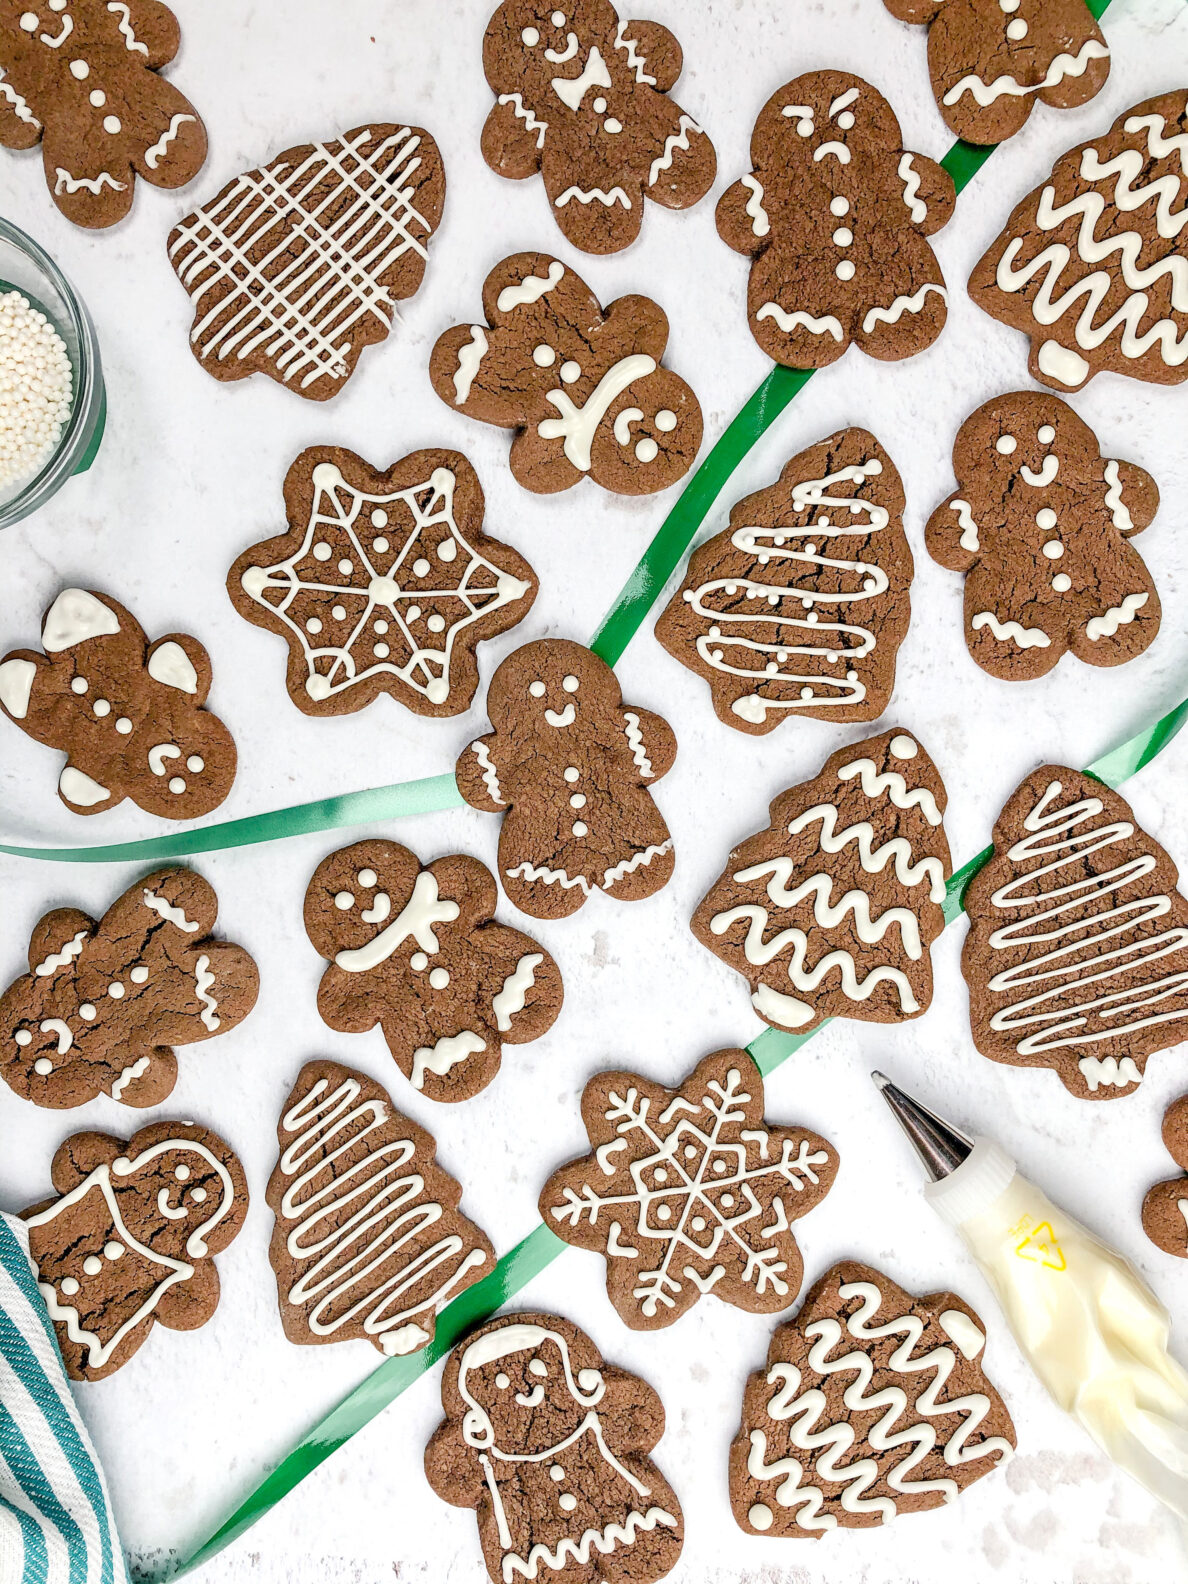 Kate's-Safe-and-Sweet---chocolate-gingerbread-1